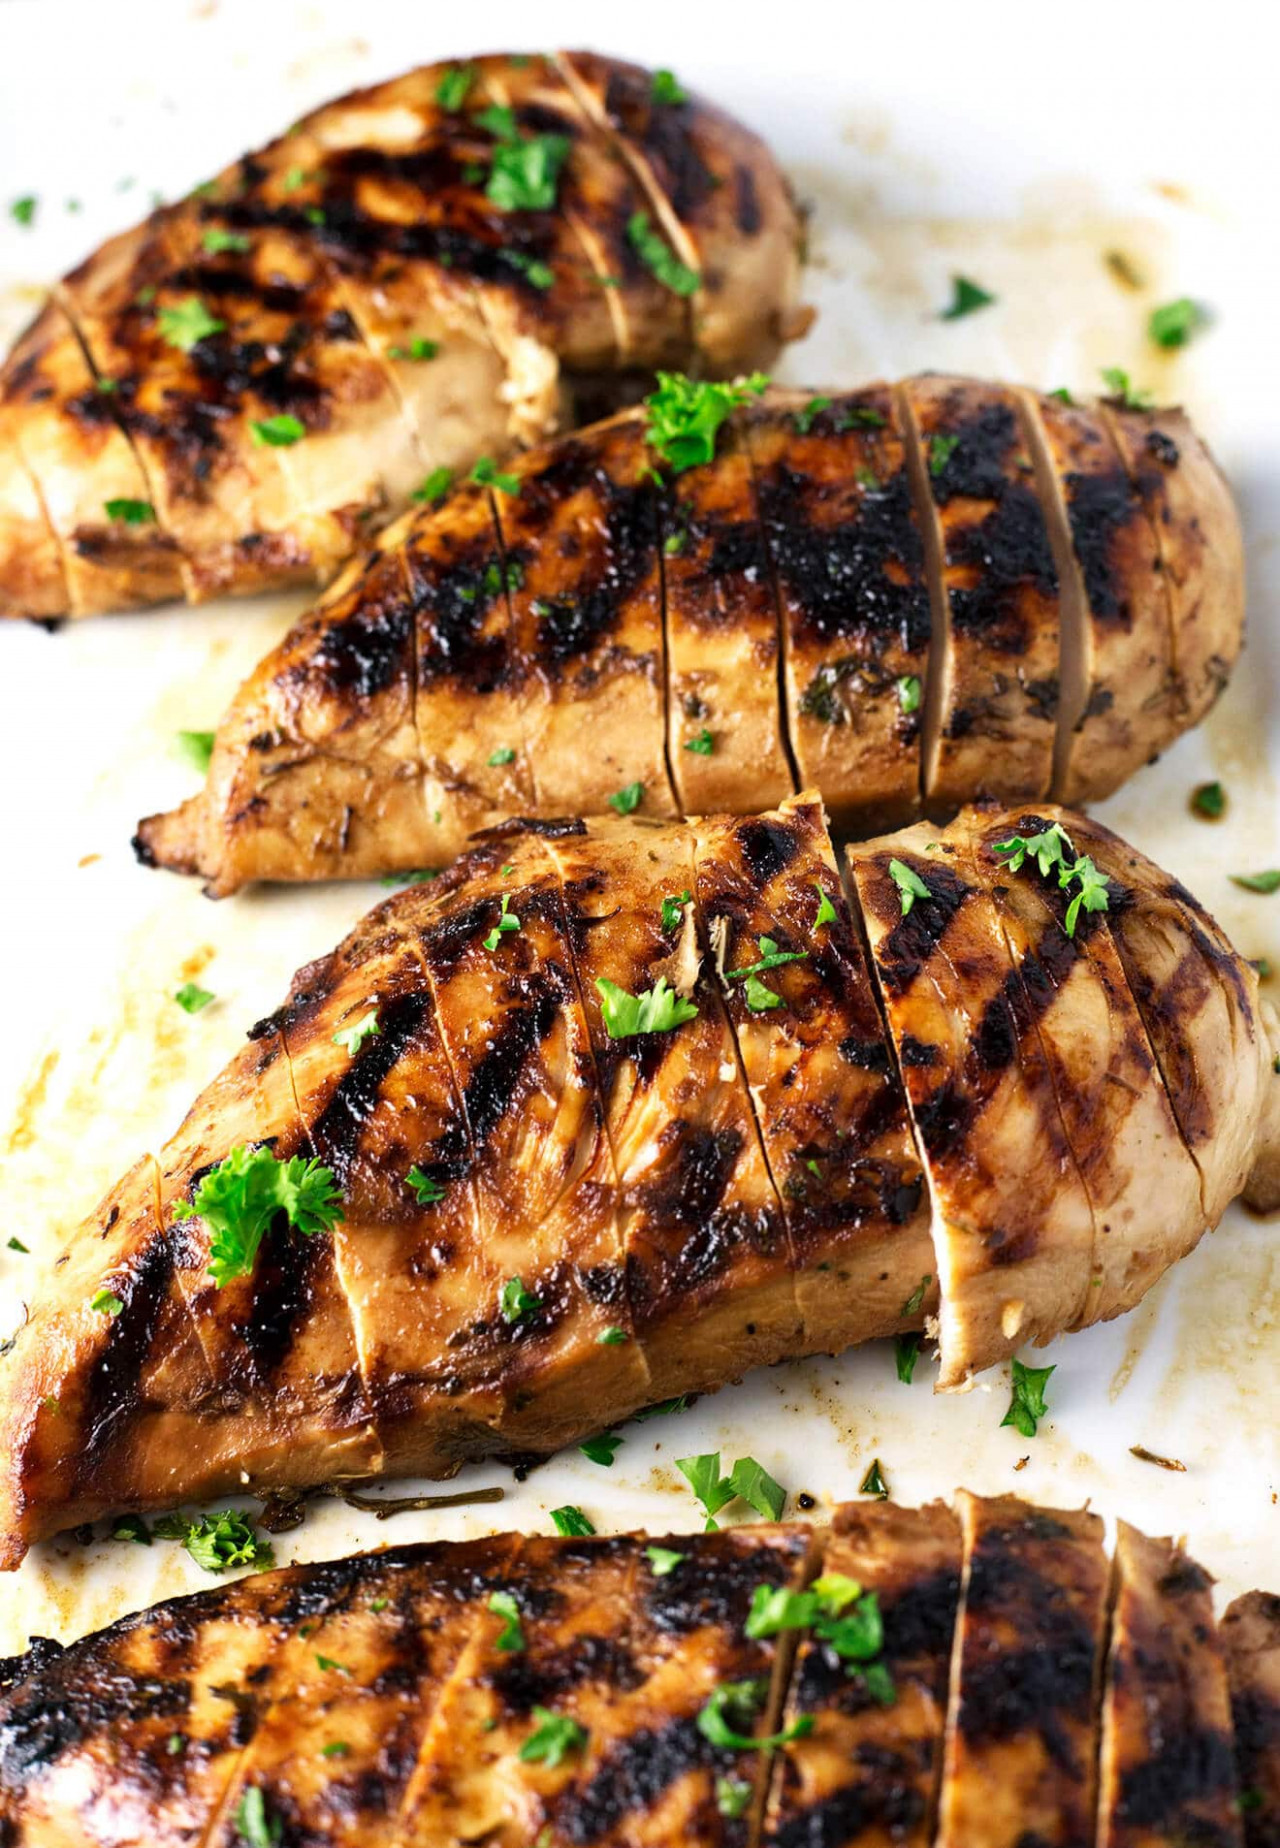 Best & Juiciest Grilled Chicken Breast • So Damn Delish - Best Recipes Chicken Breast